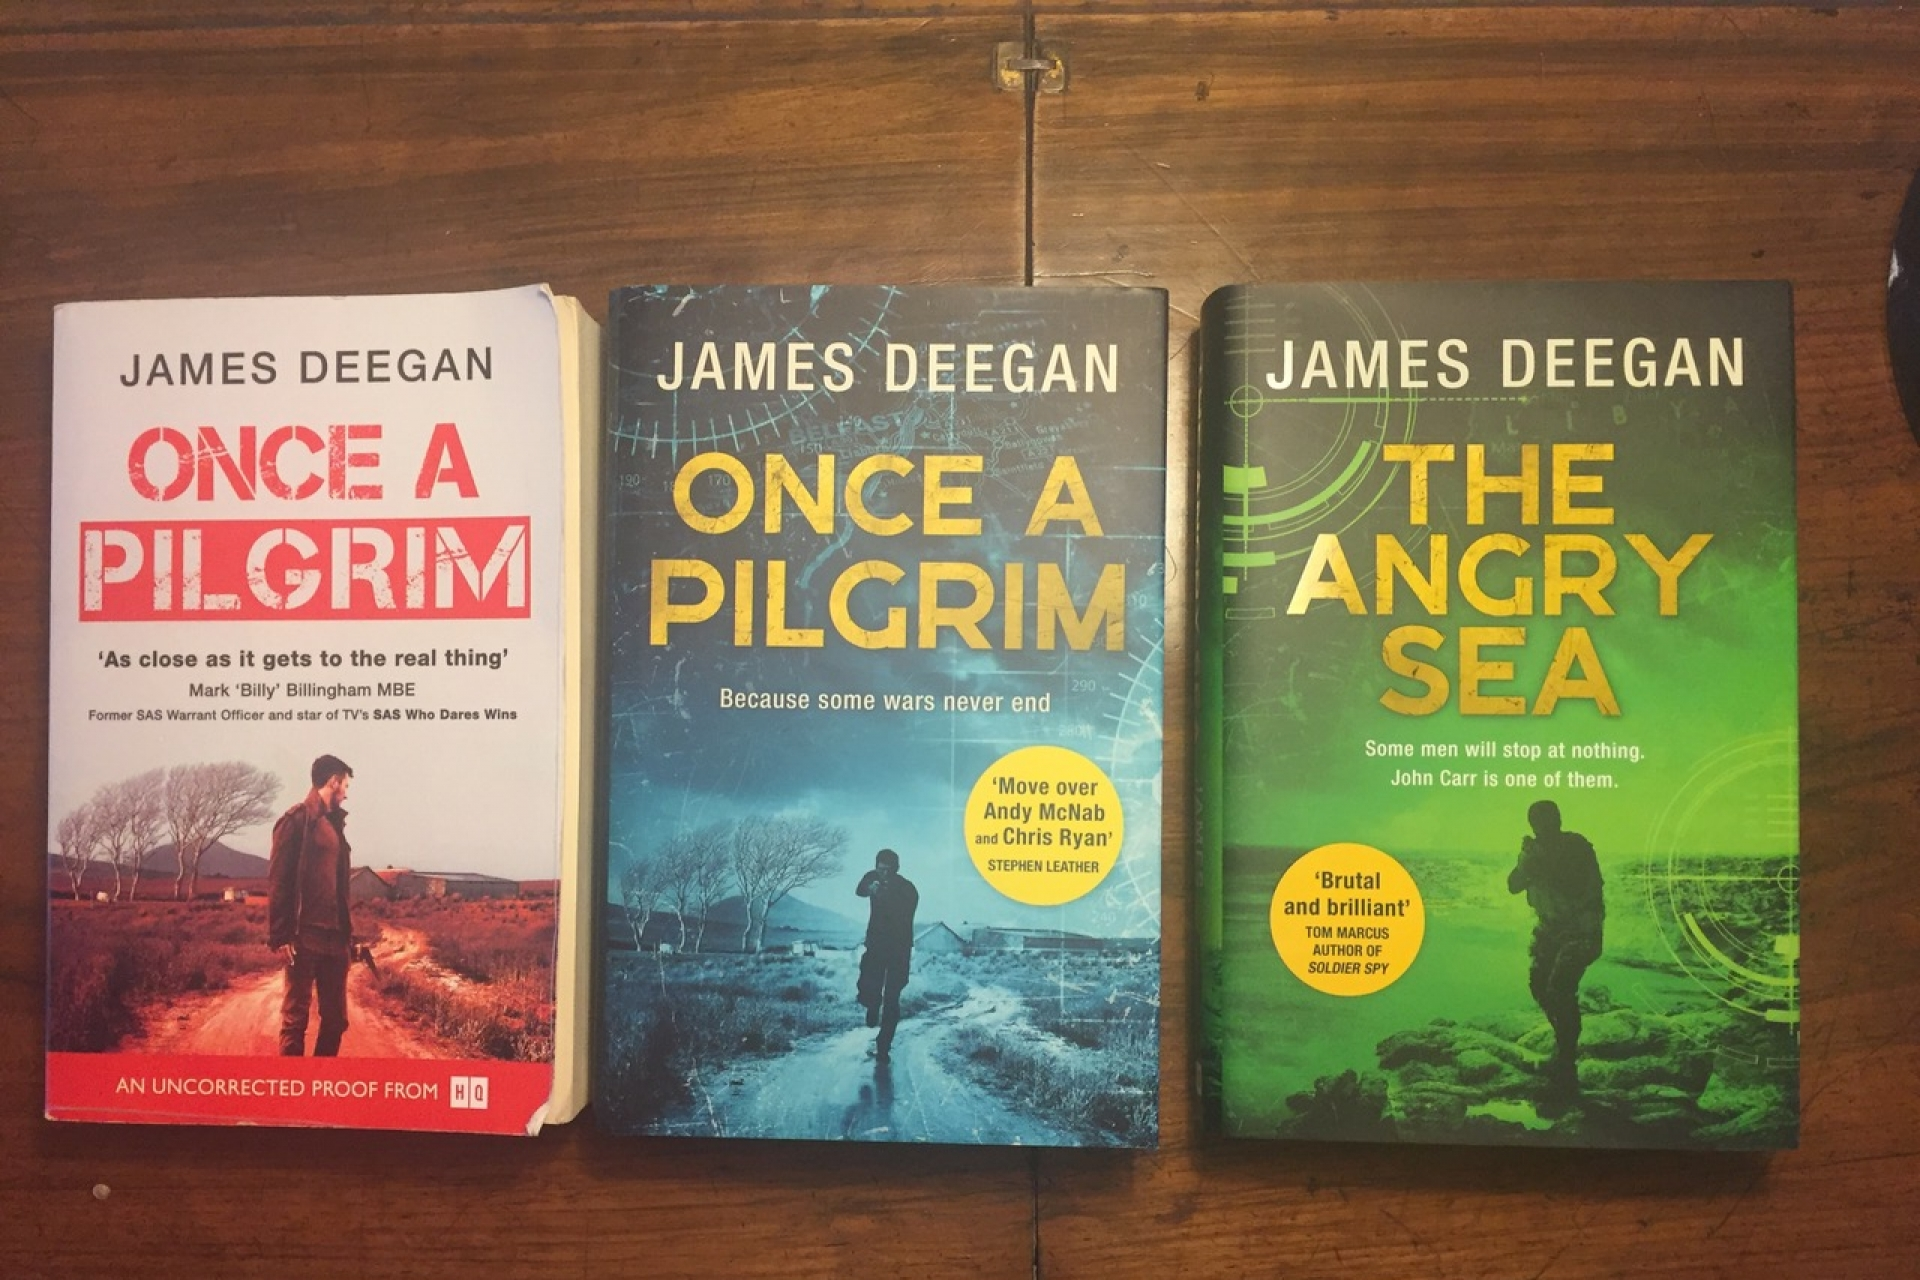 Putting Authors in the Picture #5: James Deegan